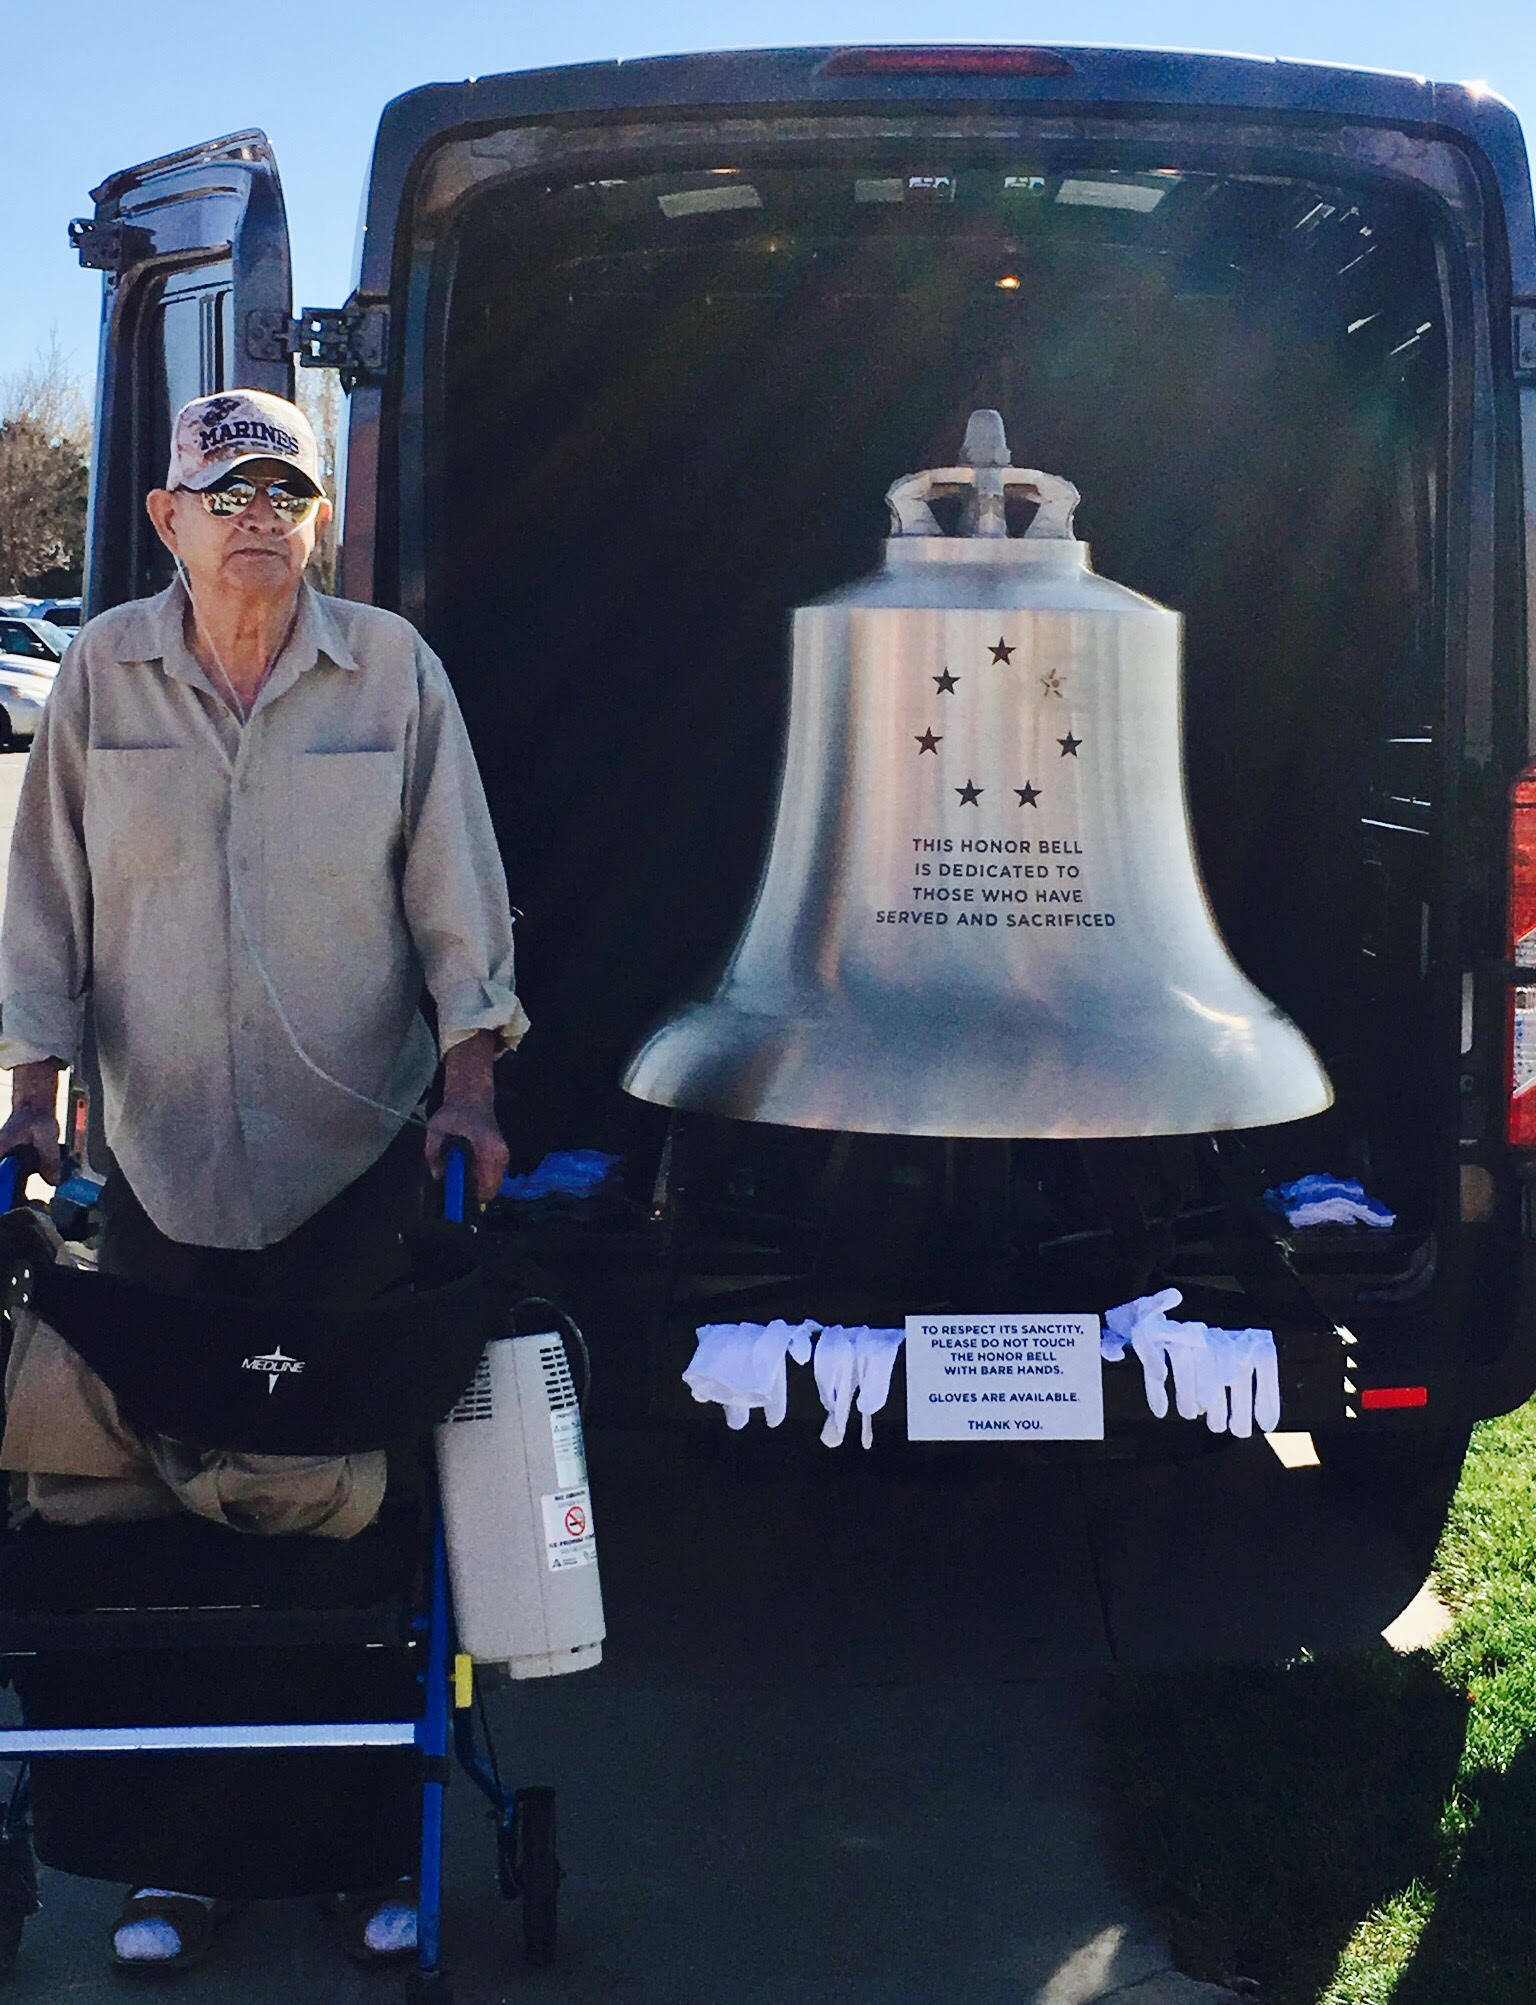 Bill Hempel and the Honor Bell